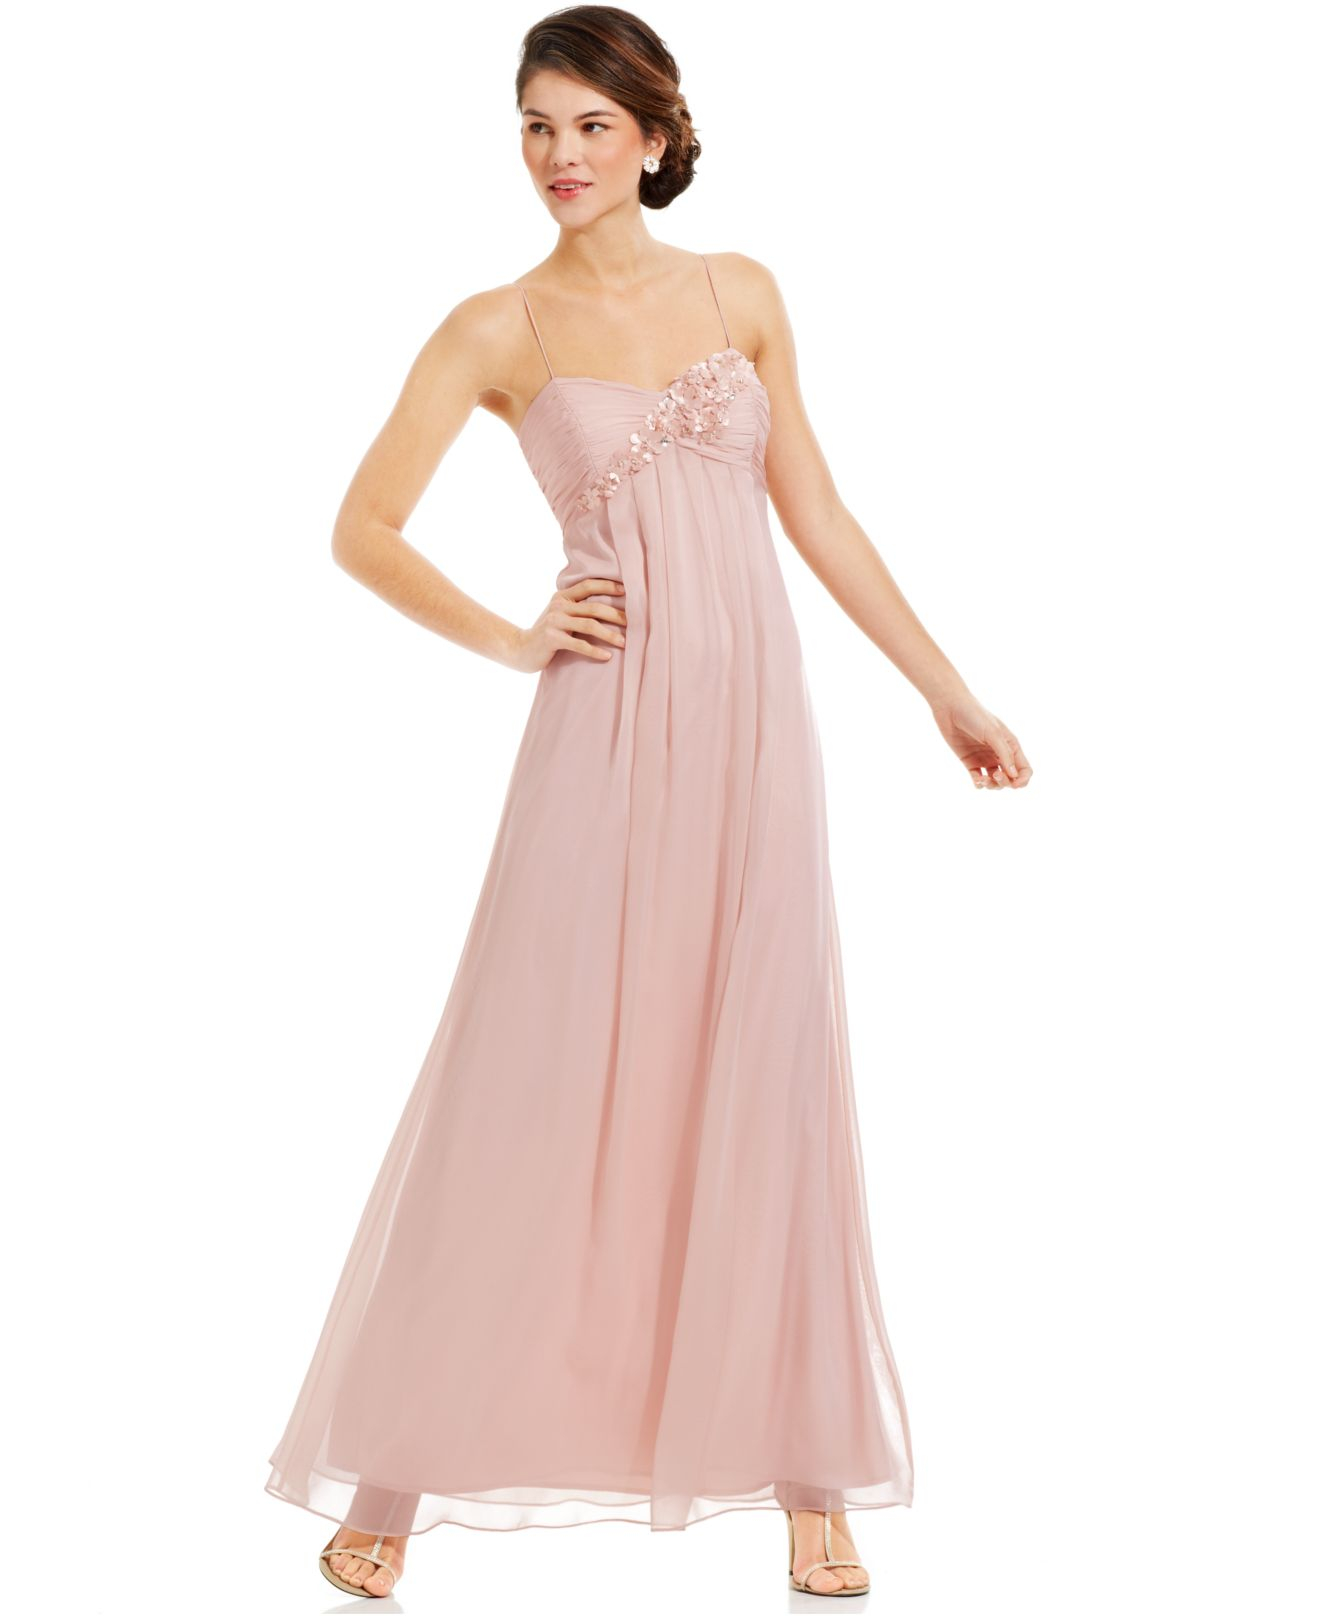 f552bbf1d8d7 Adrianna Papell Pink Sleeveless Floral-applique Gown